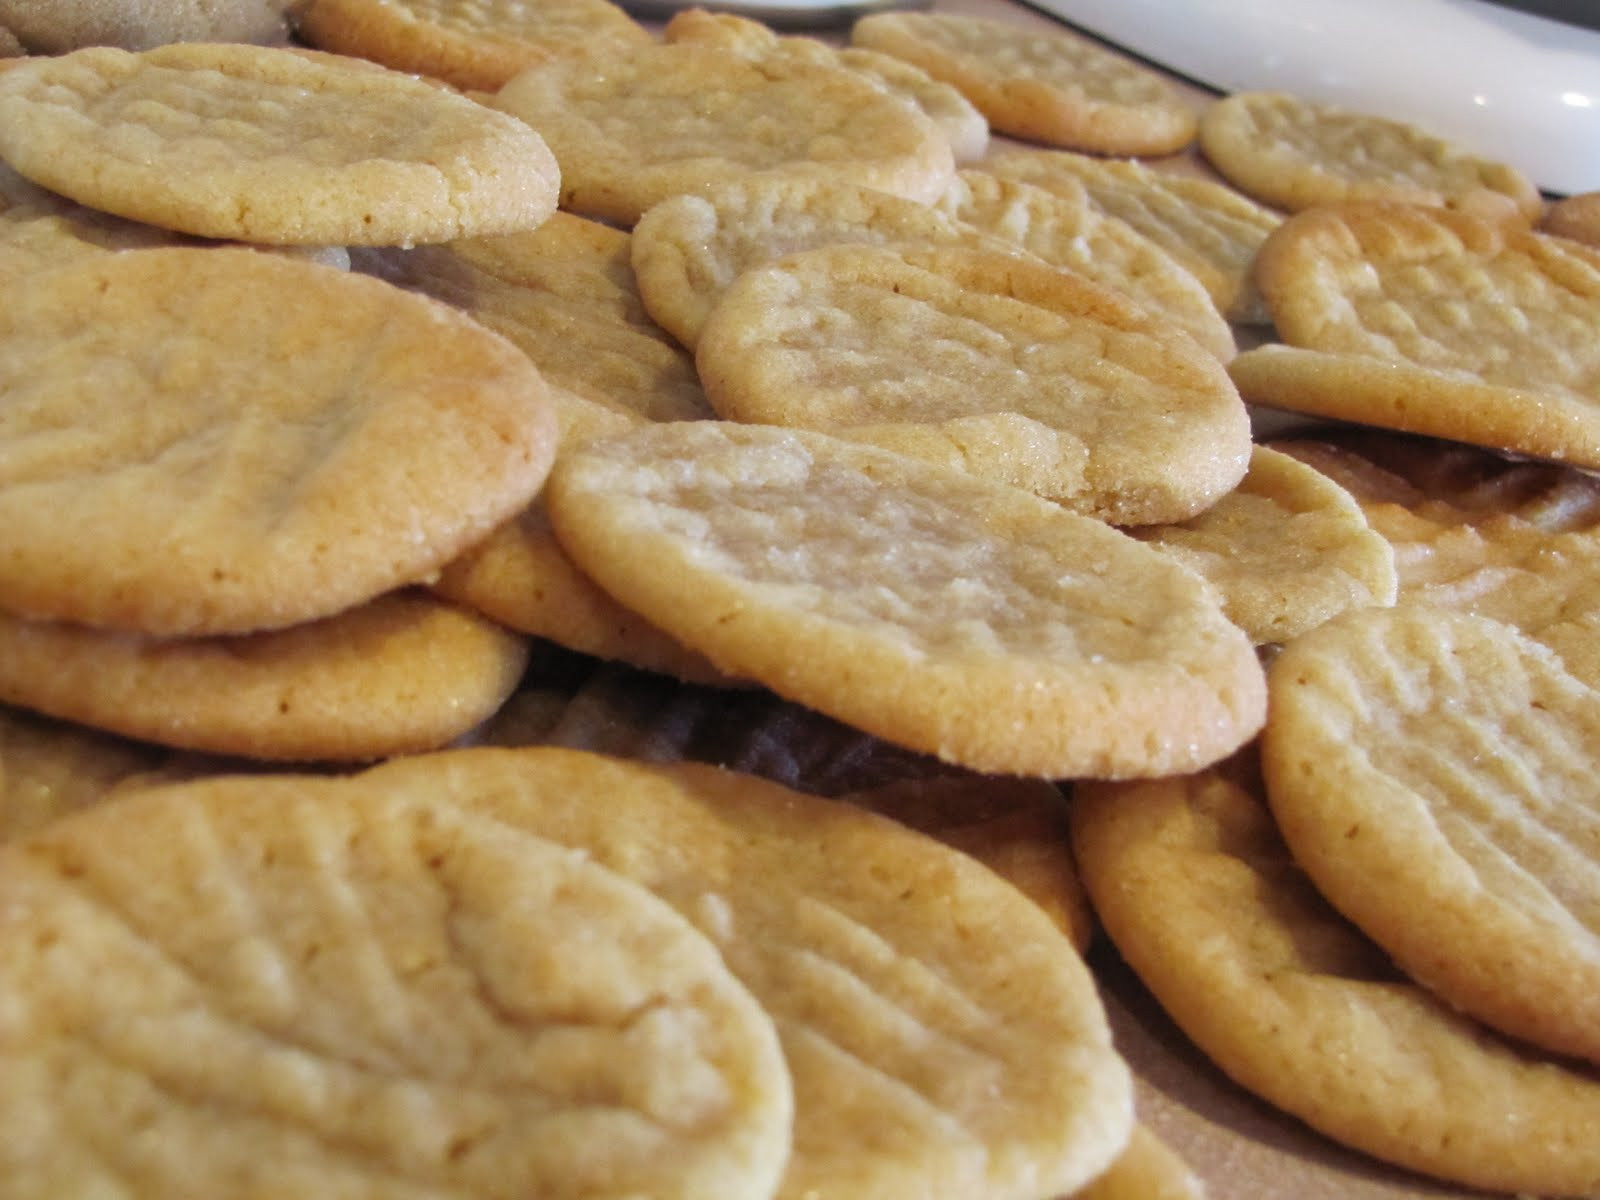 Soft Chewy Peanut Butter Cookies  Soft and Chewy Peanut Butter Cookies